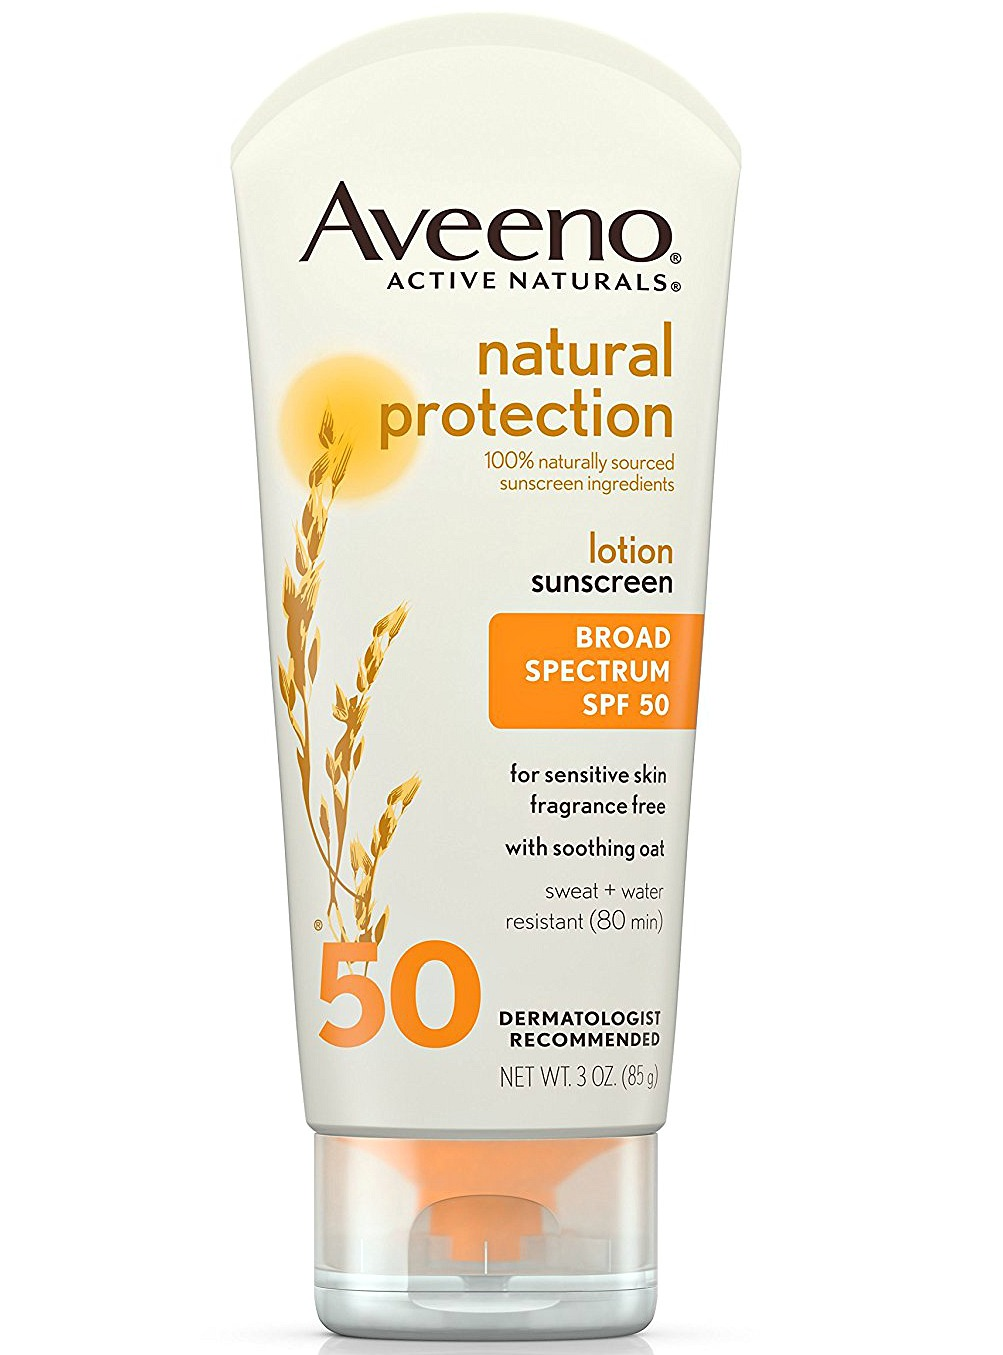 The 10 Best Face Sunscreens For Travel Sunscreen Spf50 I Prefer This Spf Level Over Higher Amounts They Have Very Different Ingredients And One Works Better My Skin